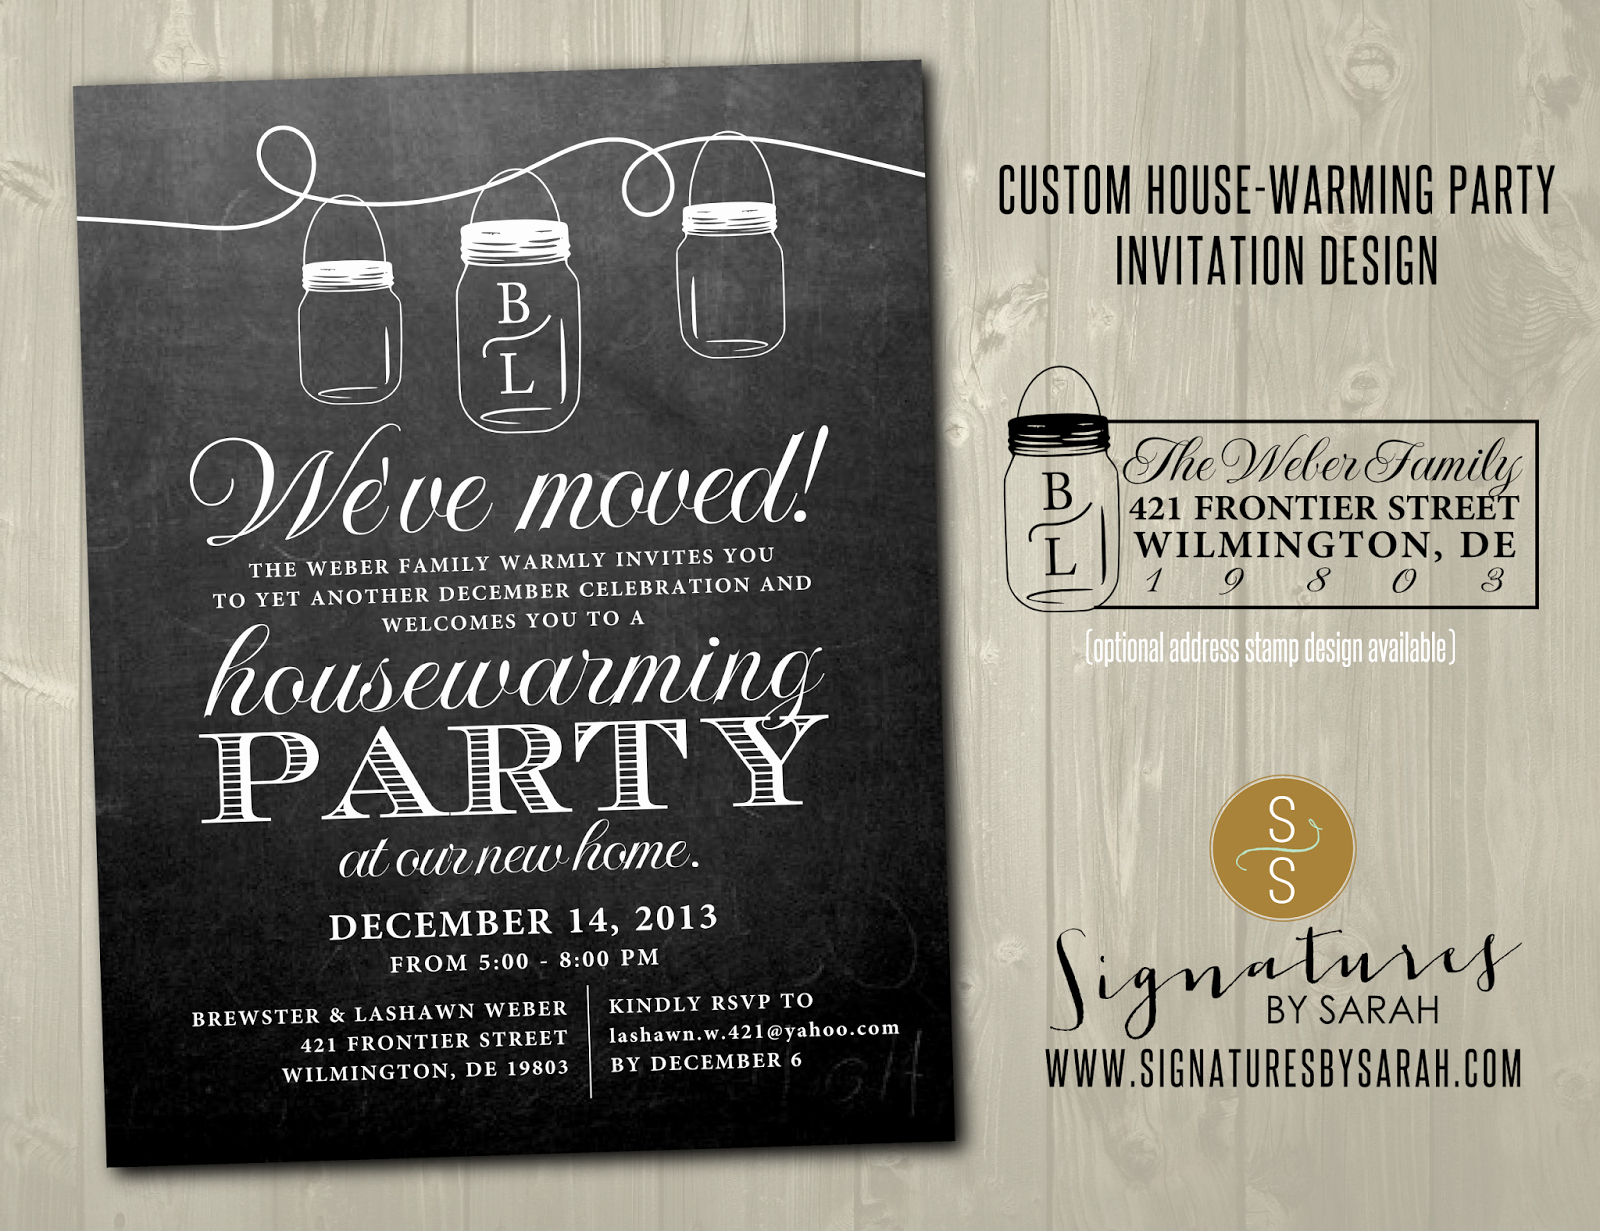 Housewarming Invitation Wording Samples Lovely Halloween Housewarming Party Invitation Wording – Festival